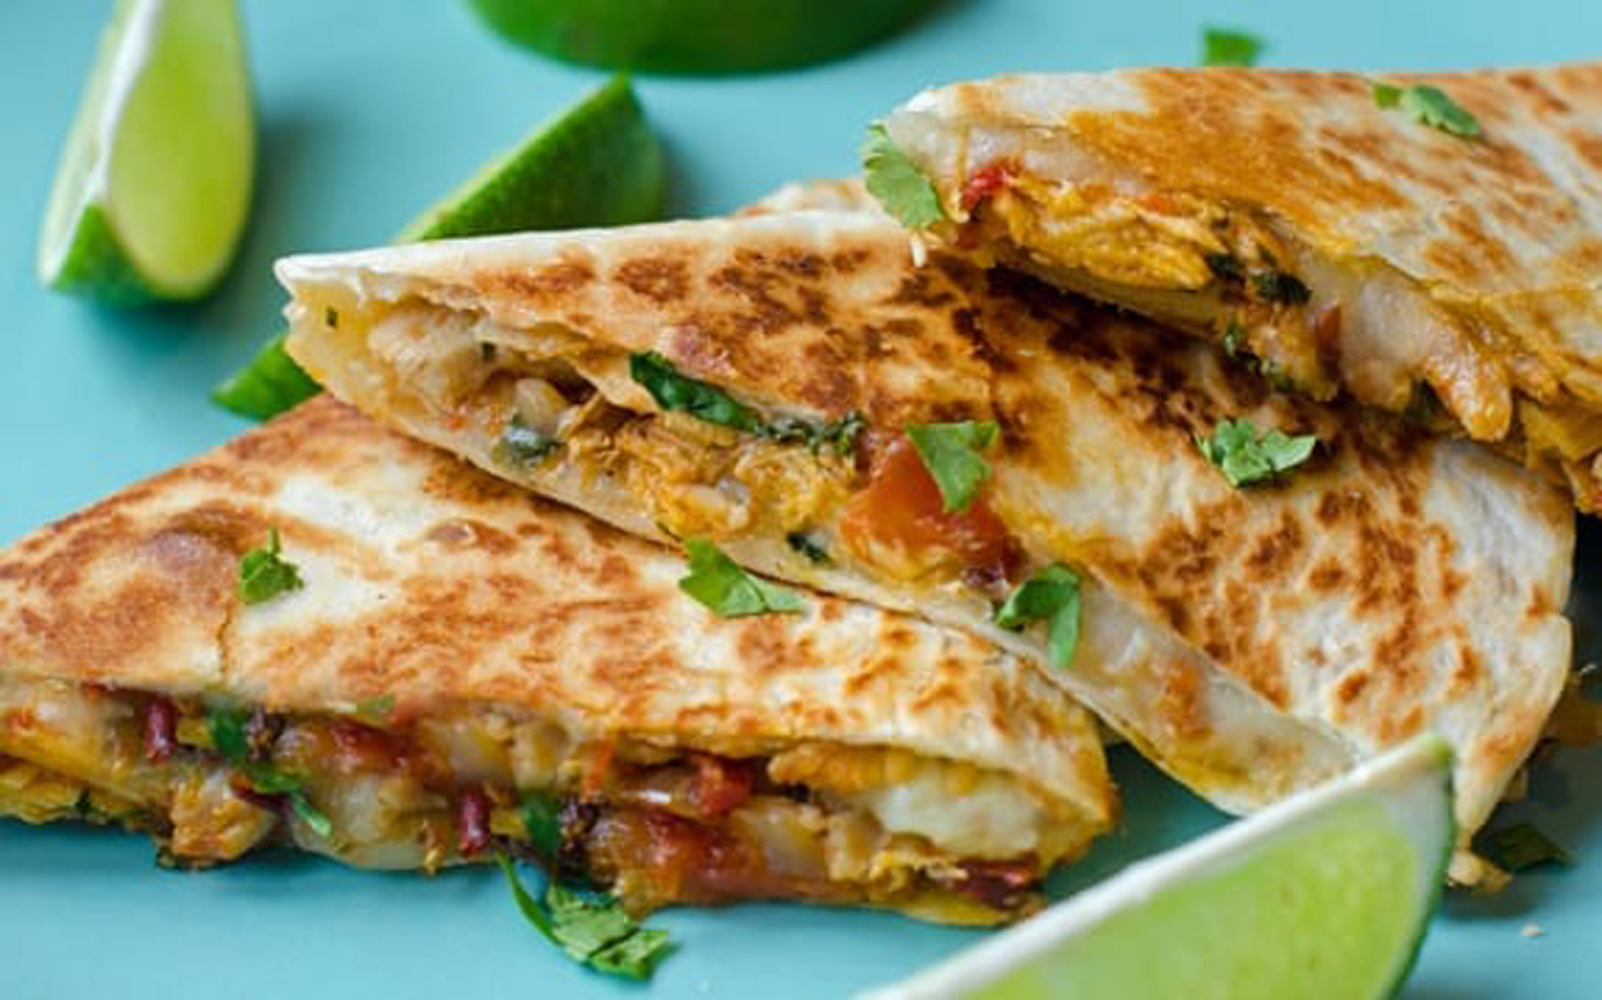 Chipotle Chicken Quesadillas Once Upon A Chef